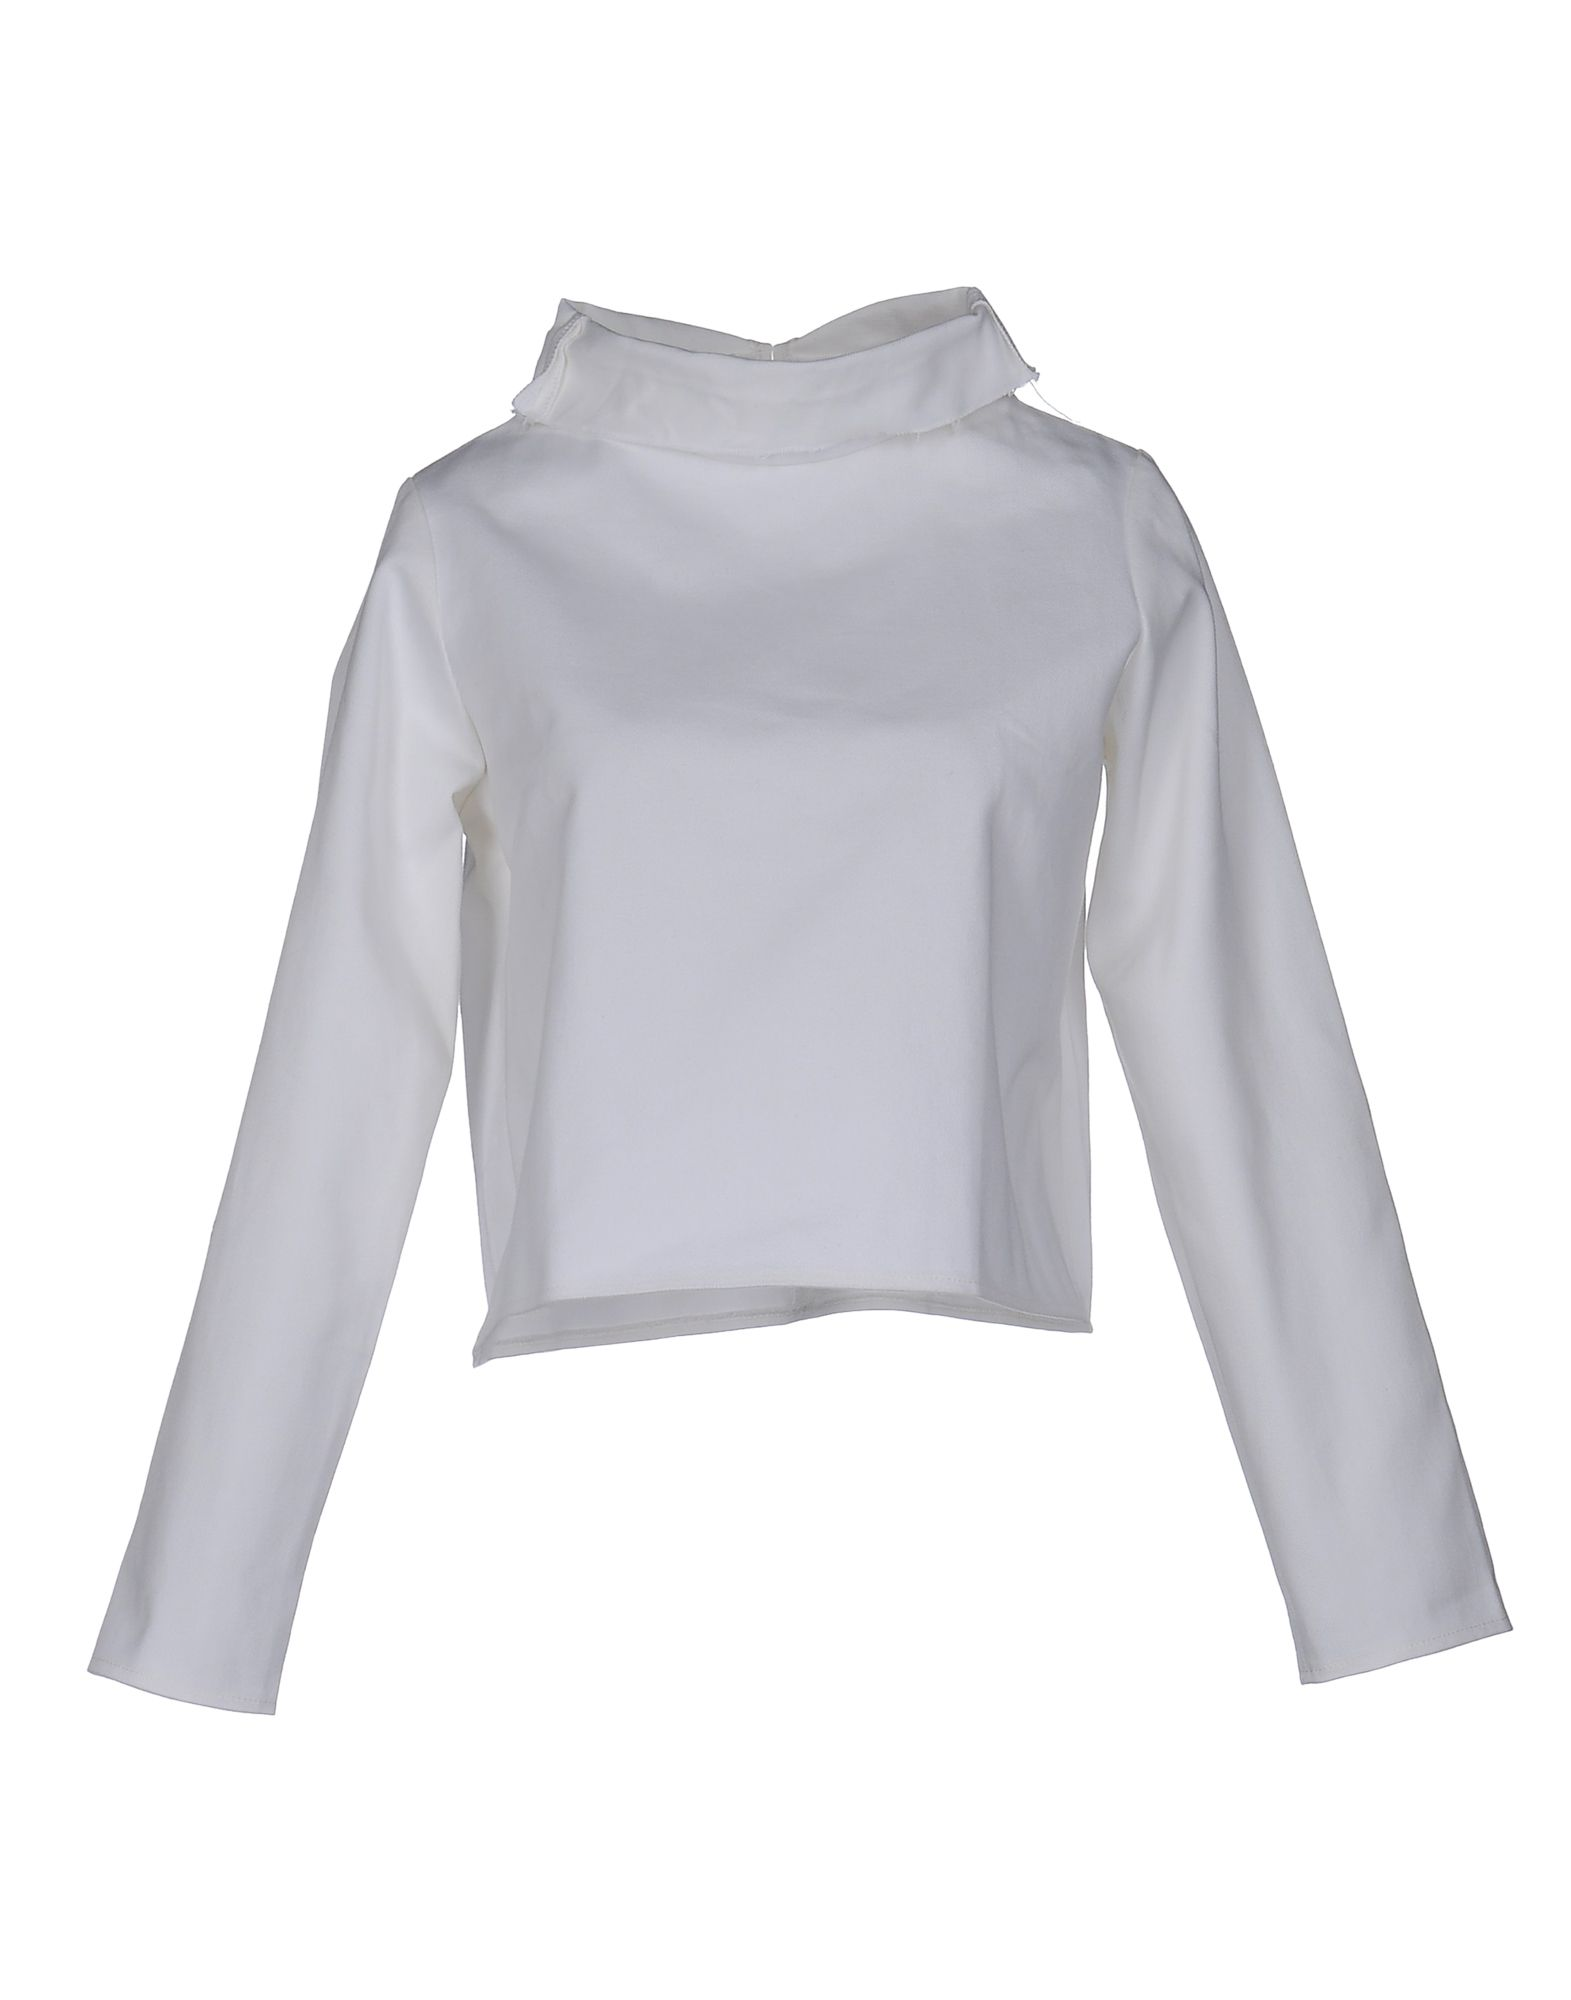 CHARLIE MAY Blouse in White